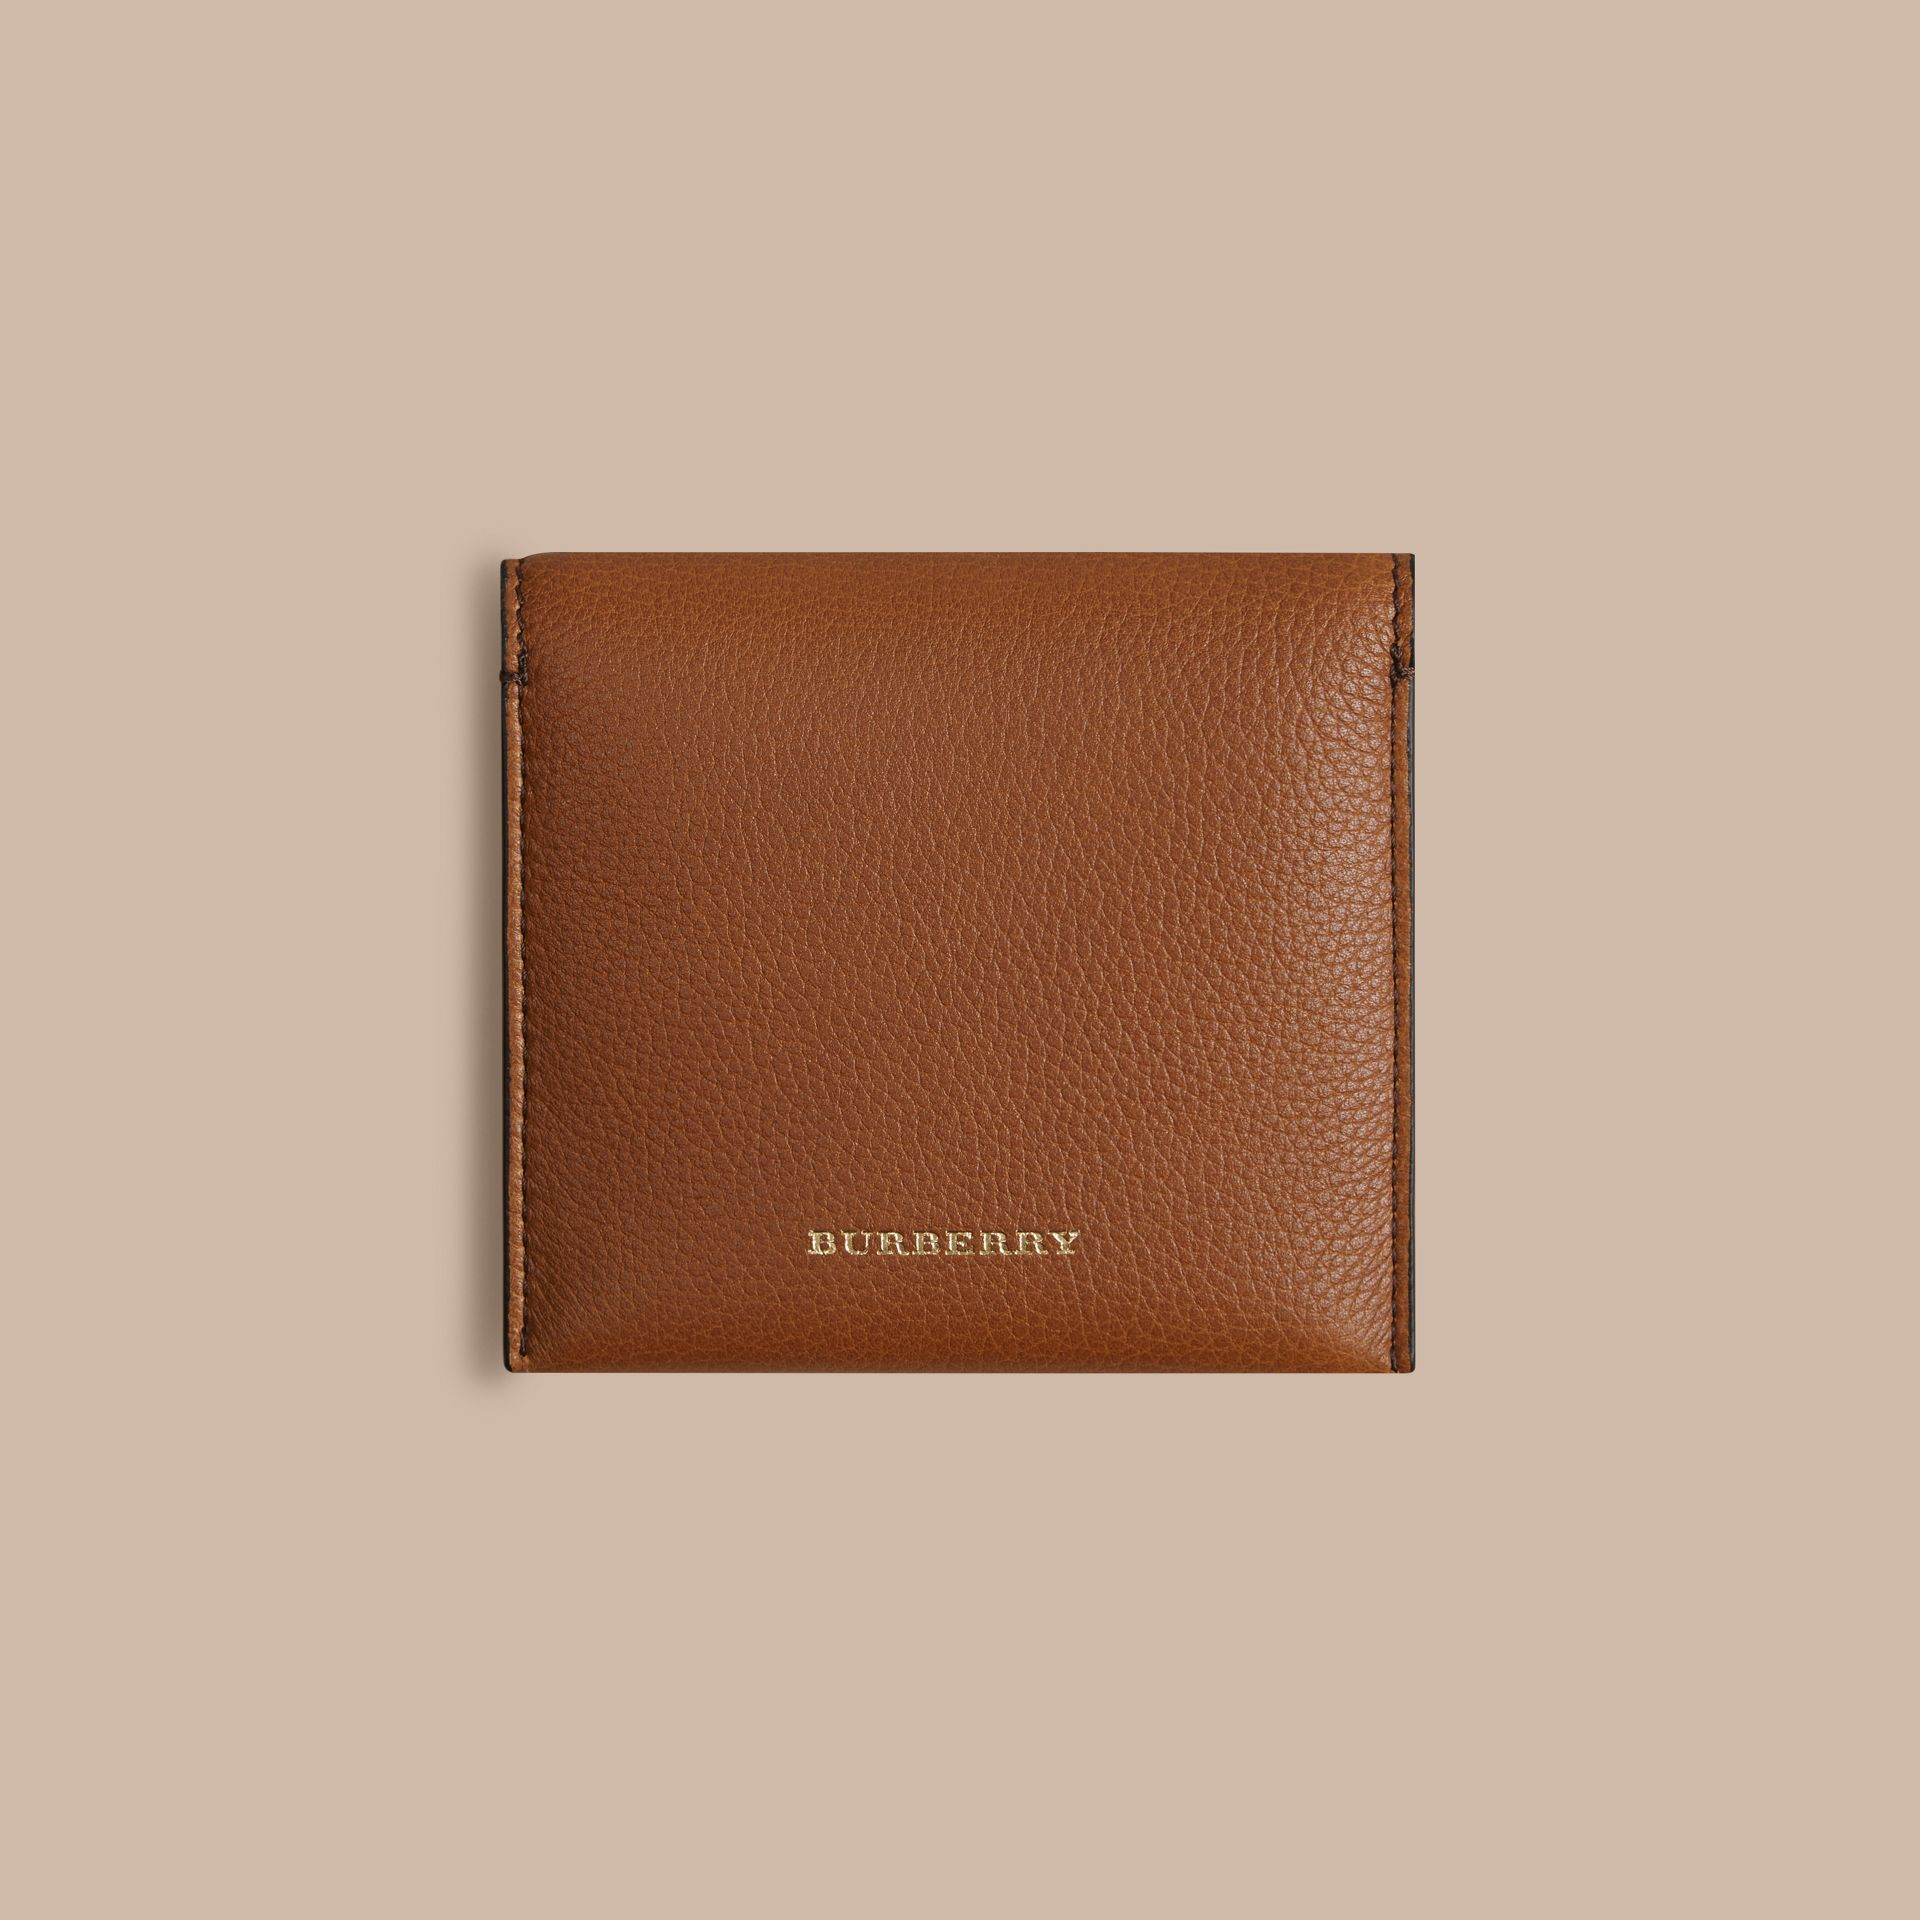 Grainy Leather Cufflink Case in Tan - Men | Burberry - gallery image 3